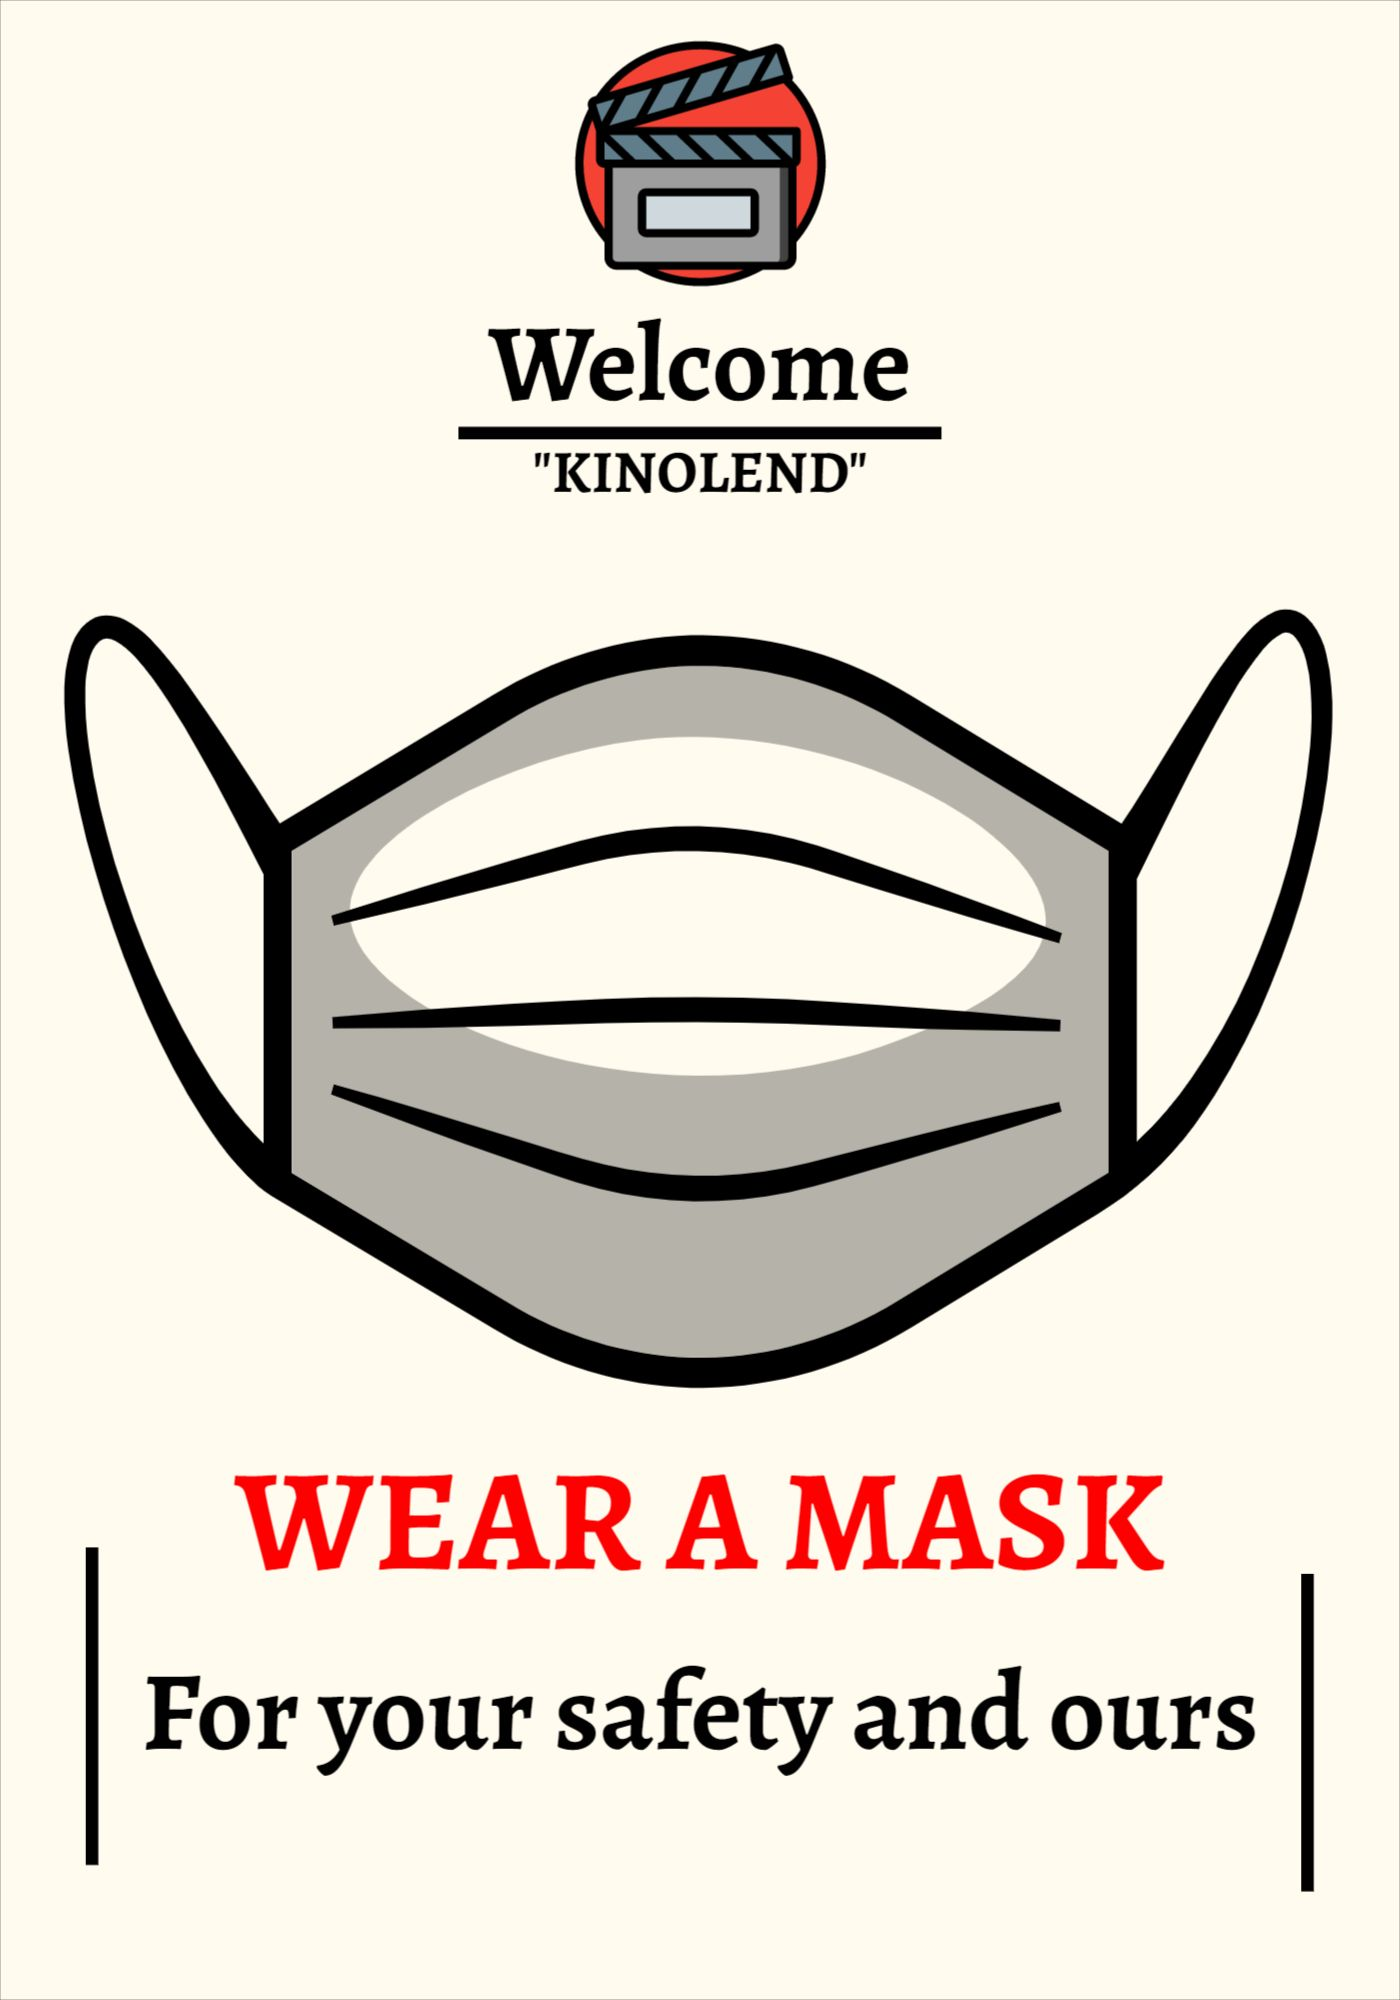 Wear Mask Poster Template